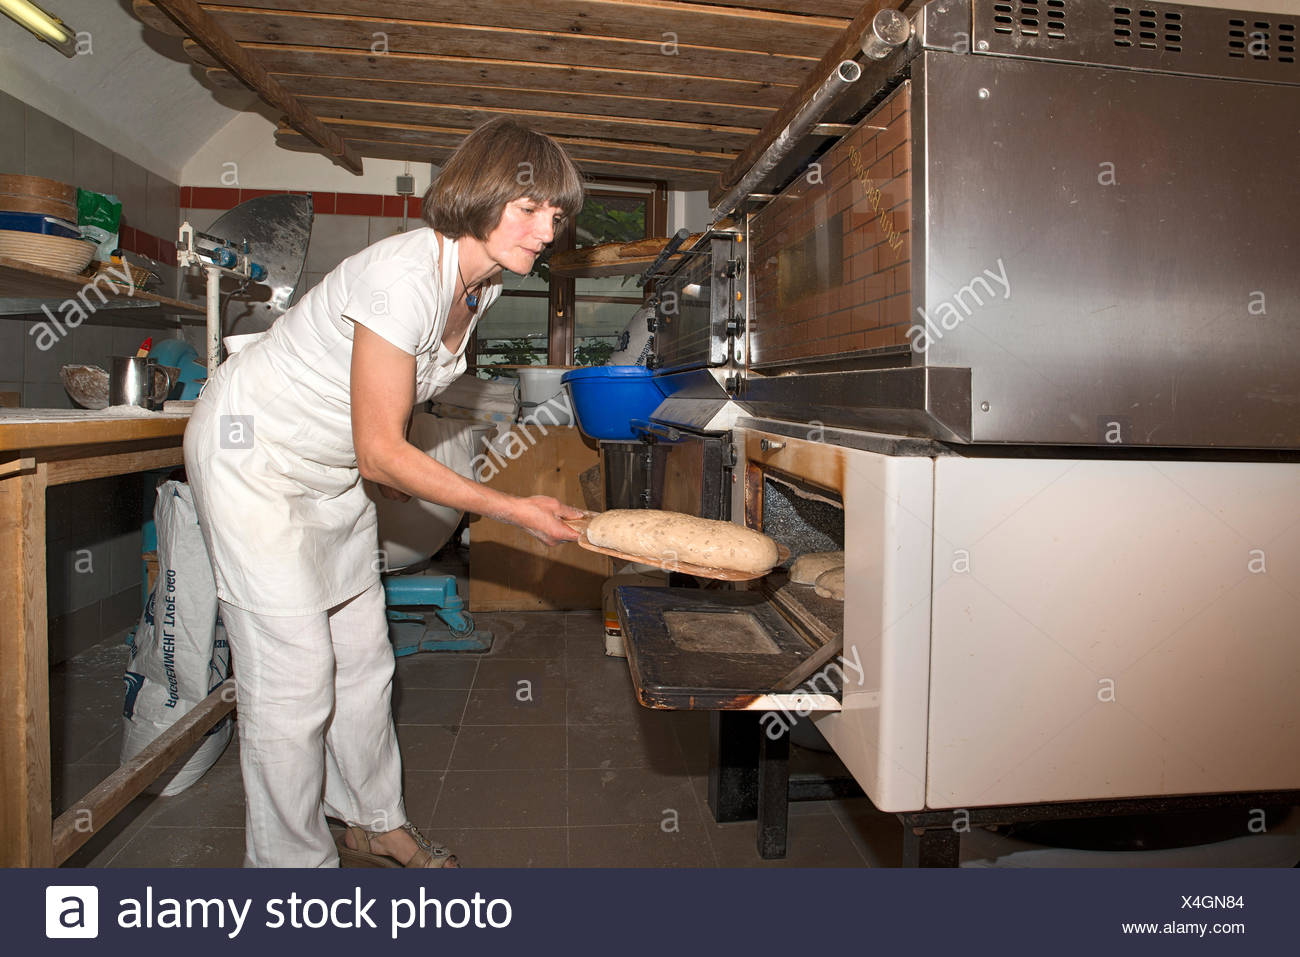 Farmer making bread in her own bakery at the farm, feeding the oven, Tyrol, Austria - Stock Image